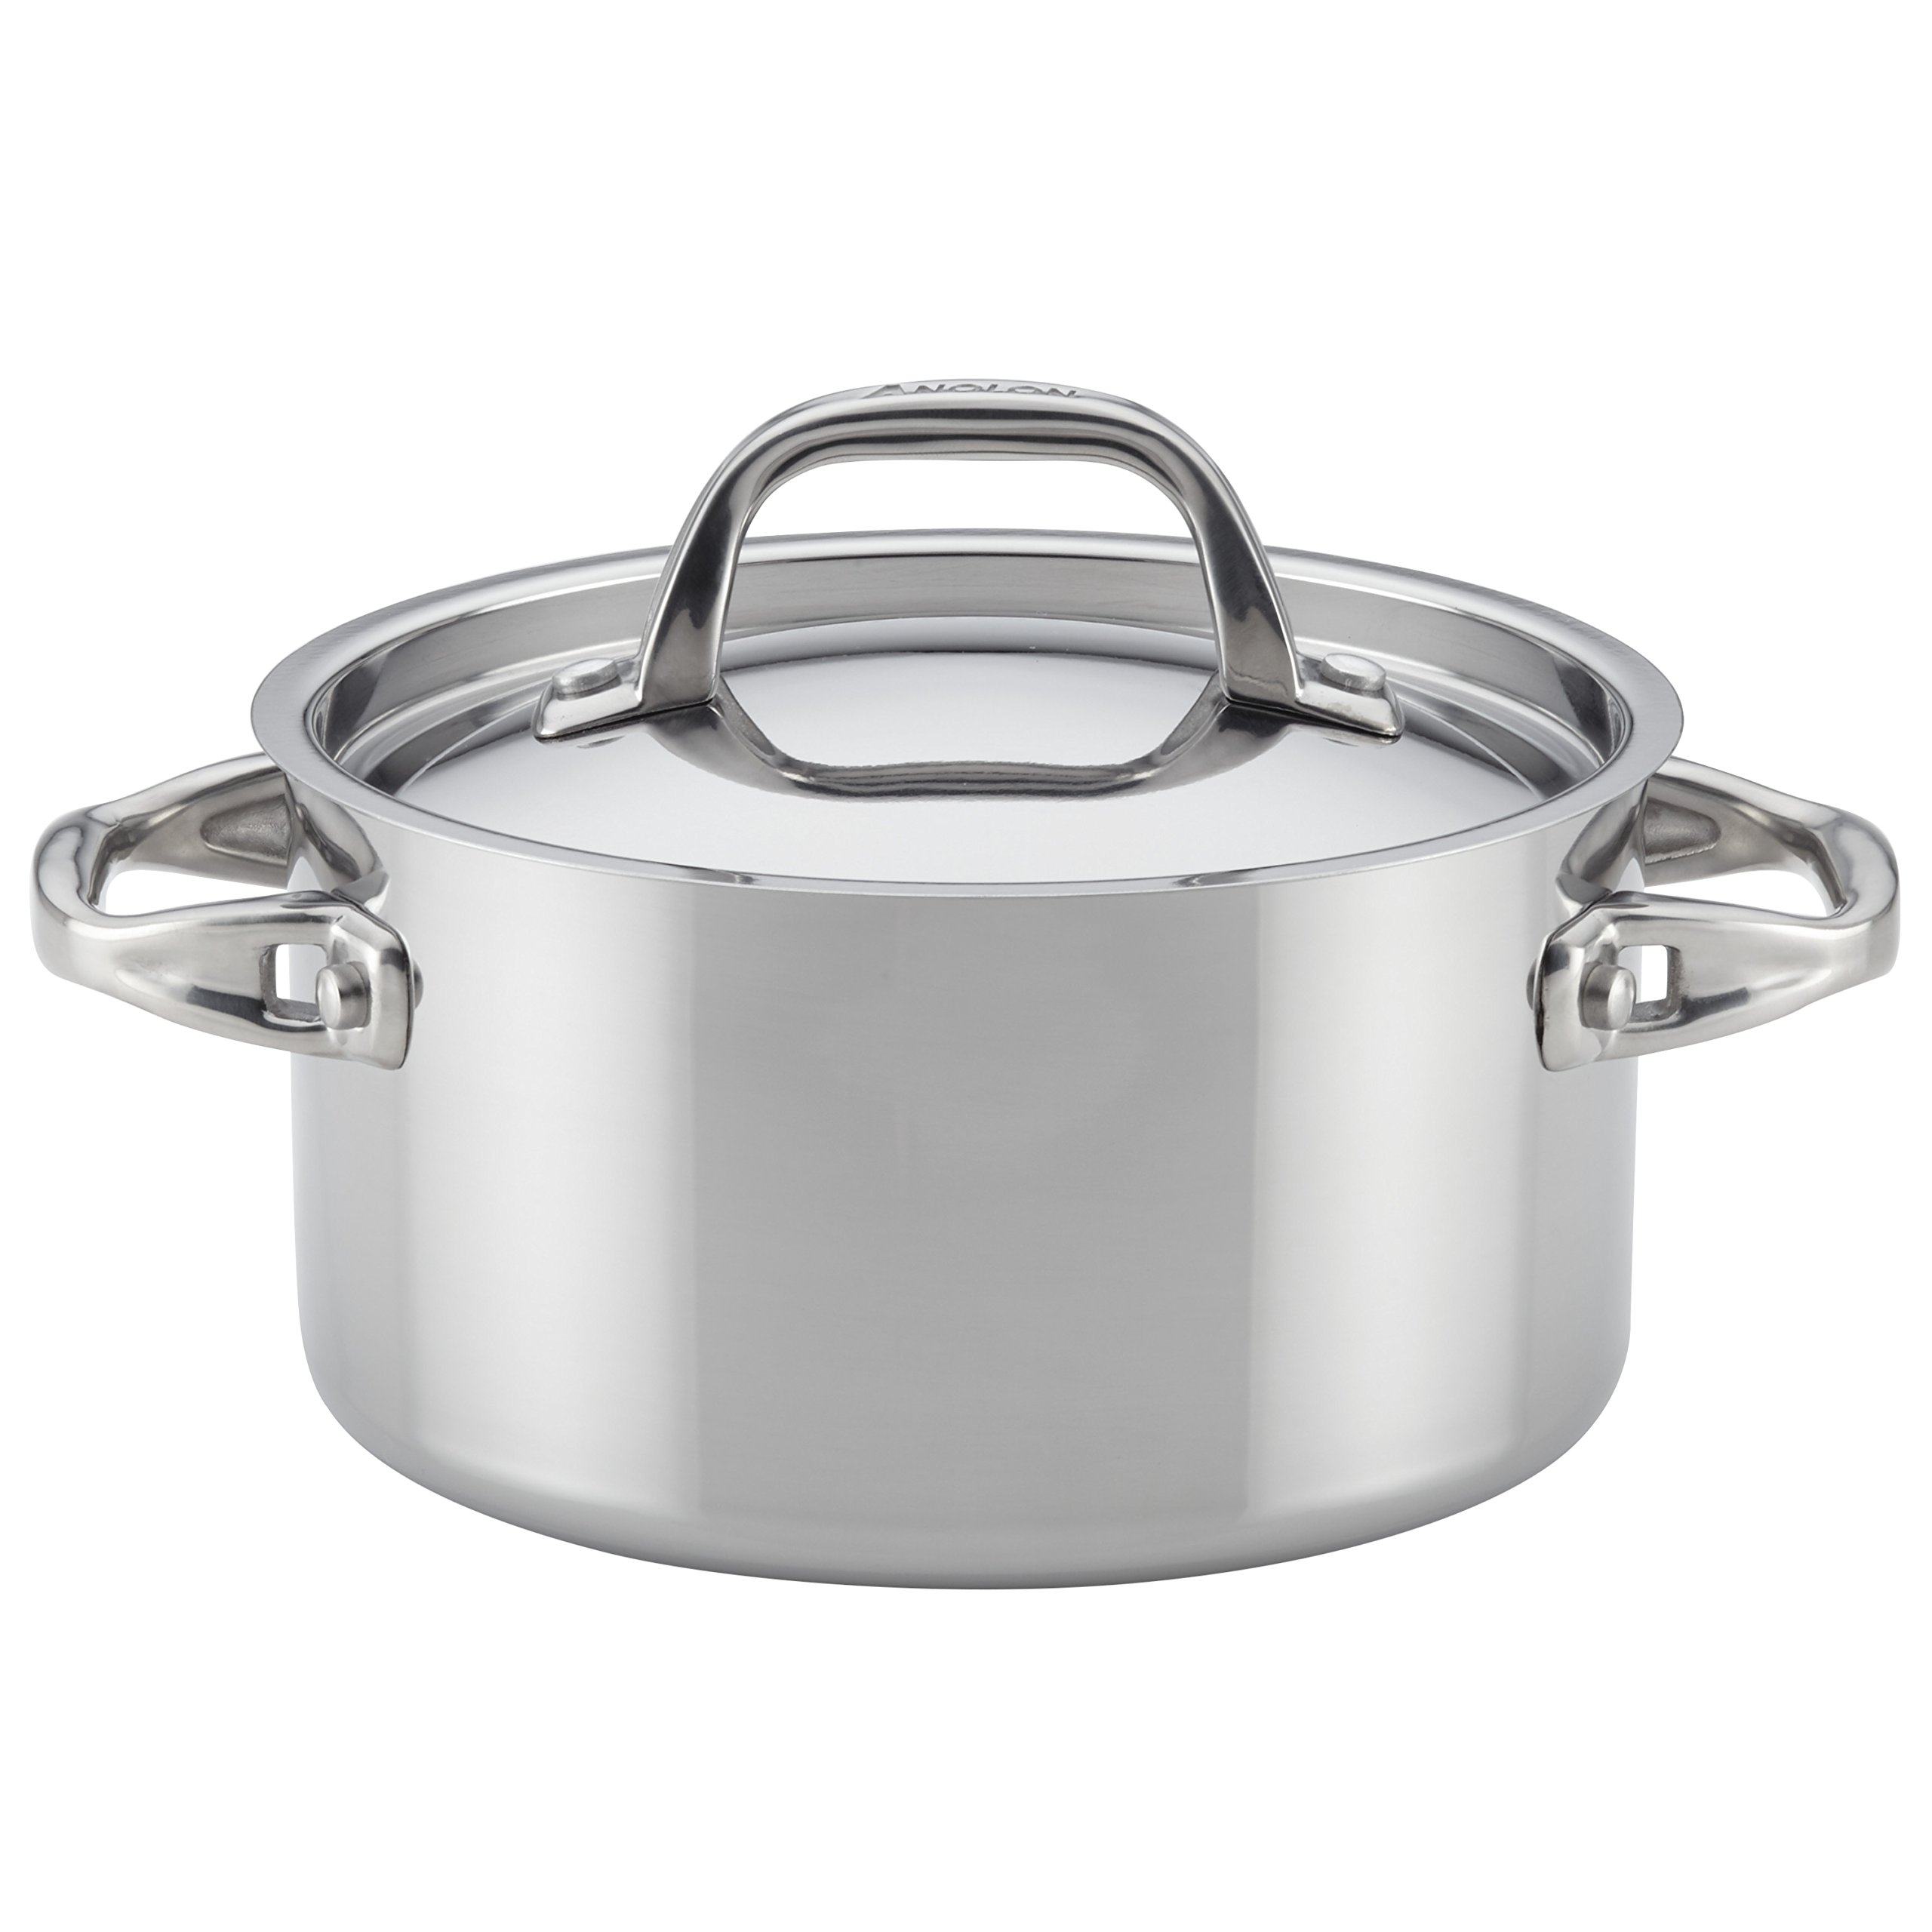 Anolon Tri-Ply Clad Stainless Steel Covered Saucepot, 3.5-Quart